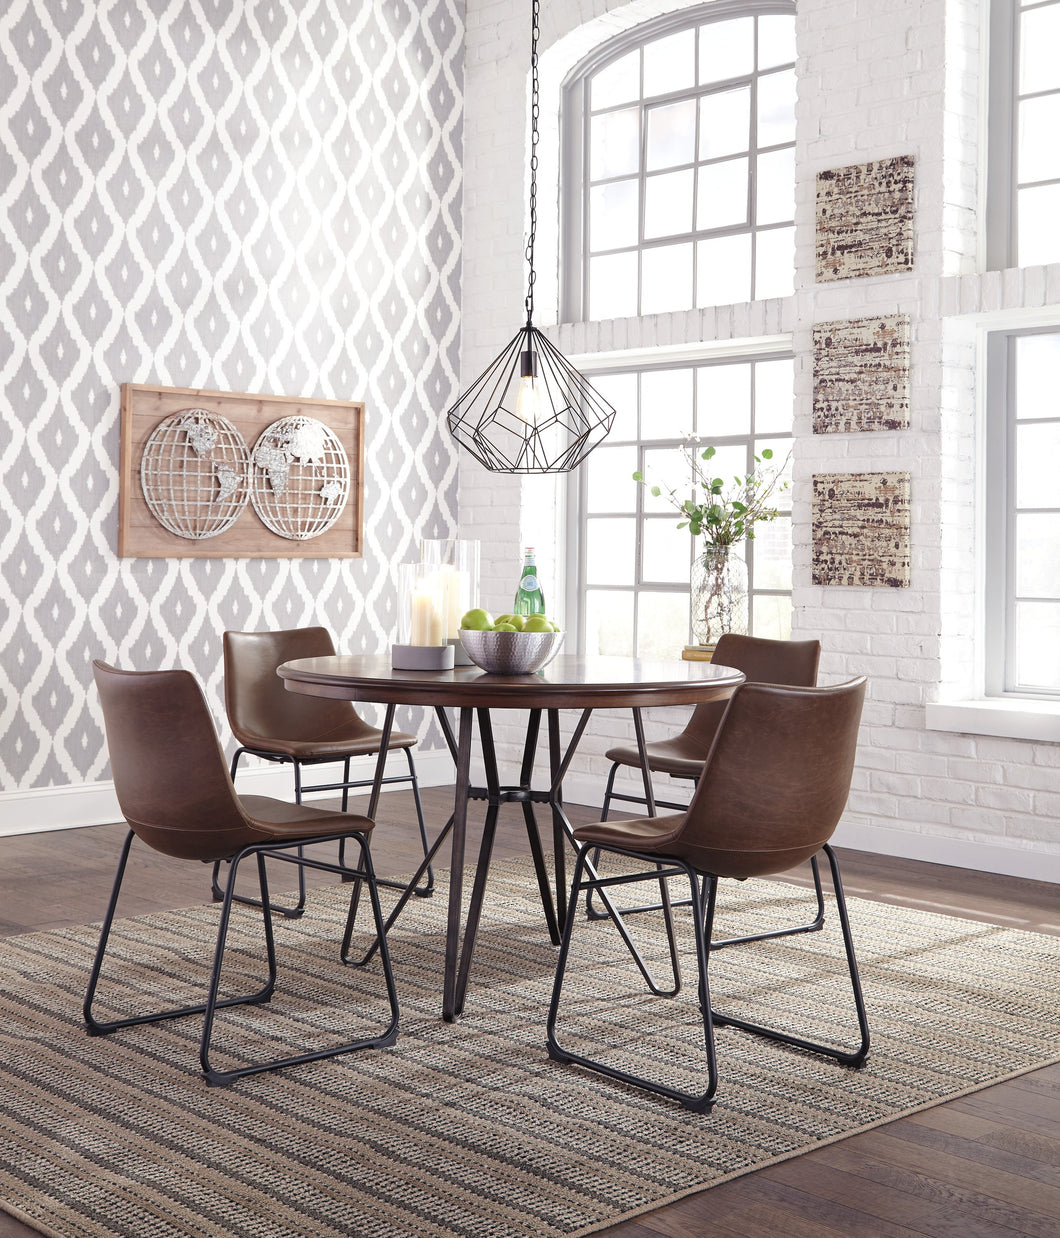 Centior Two-tone Brown Color Round Dining Room Table and Four Chairs